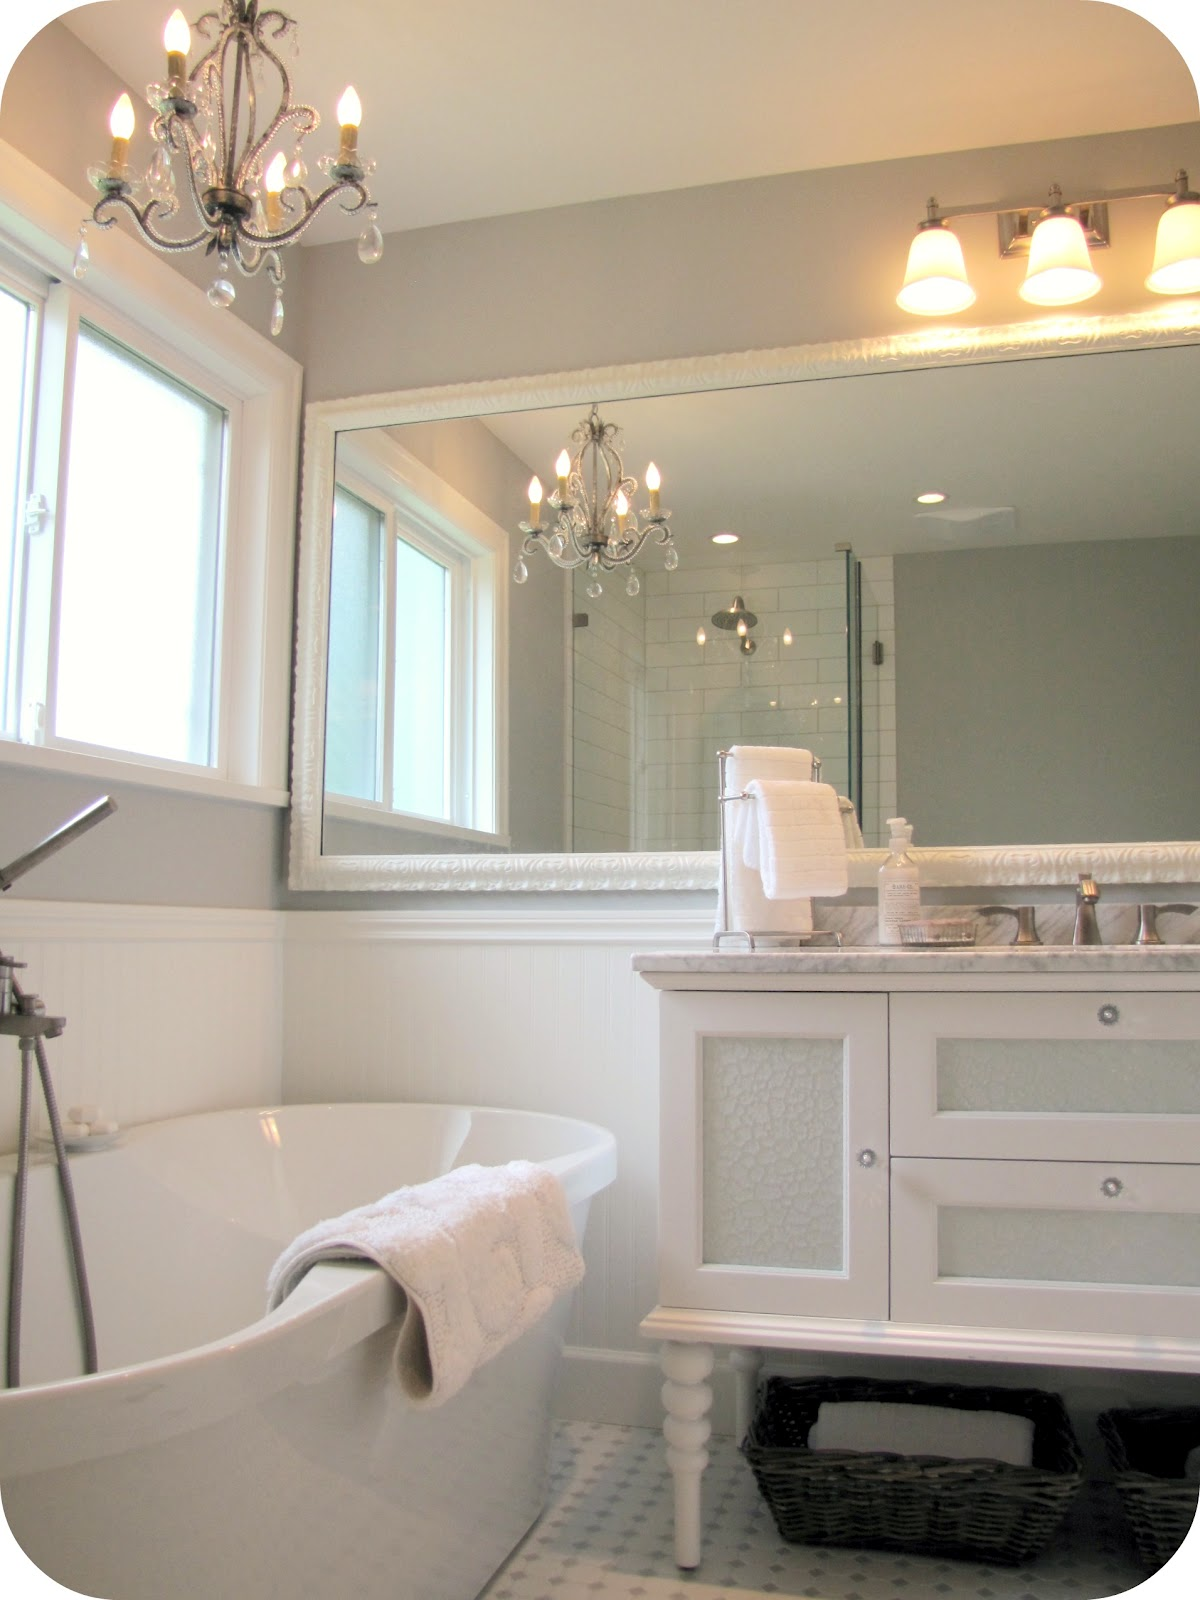 New White And Gray Bathroom With White Walls Paired With Gray Subway Tile